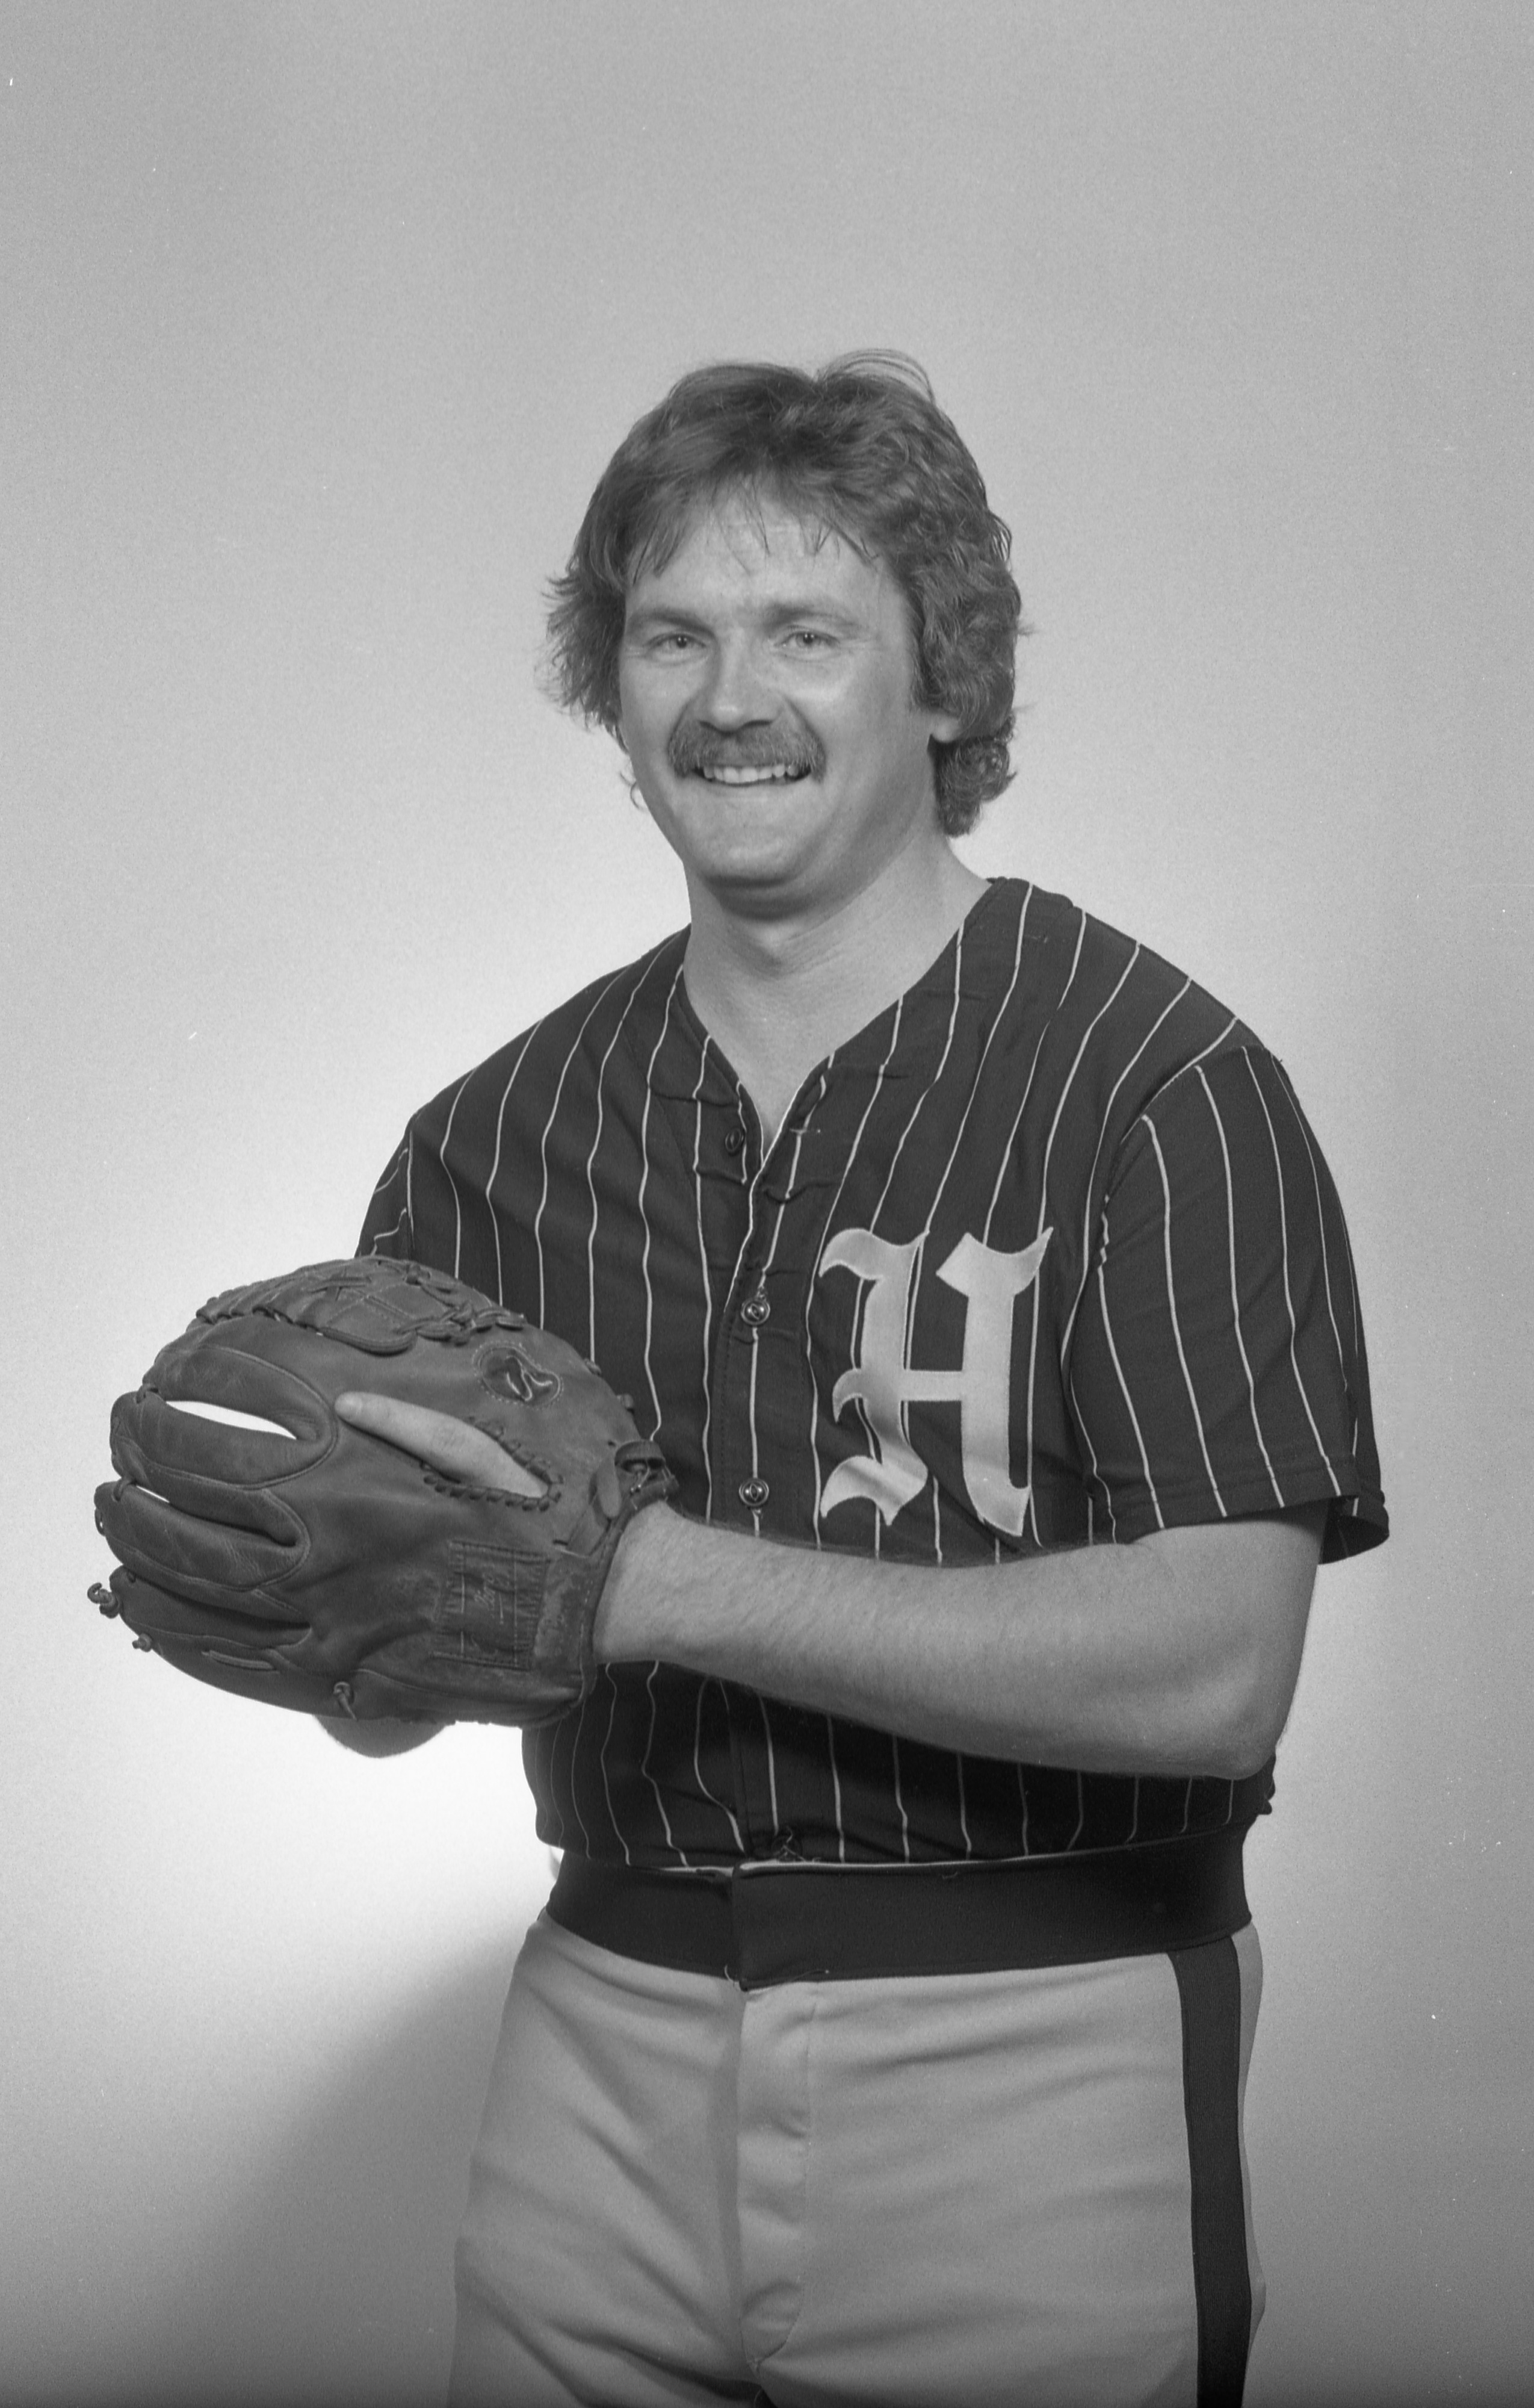 Rick Barbour - Heidelberg Softball Team, June 1984 image